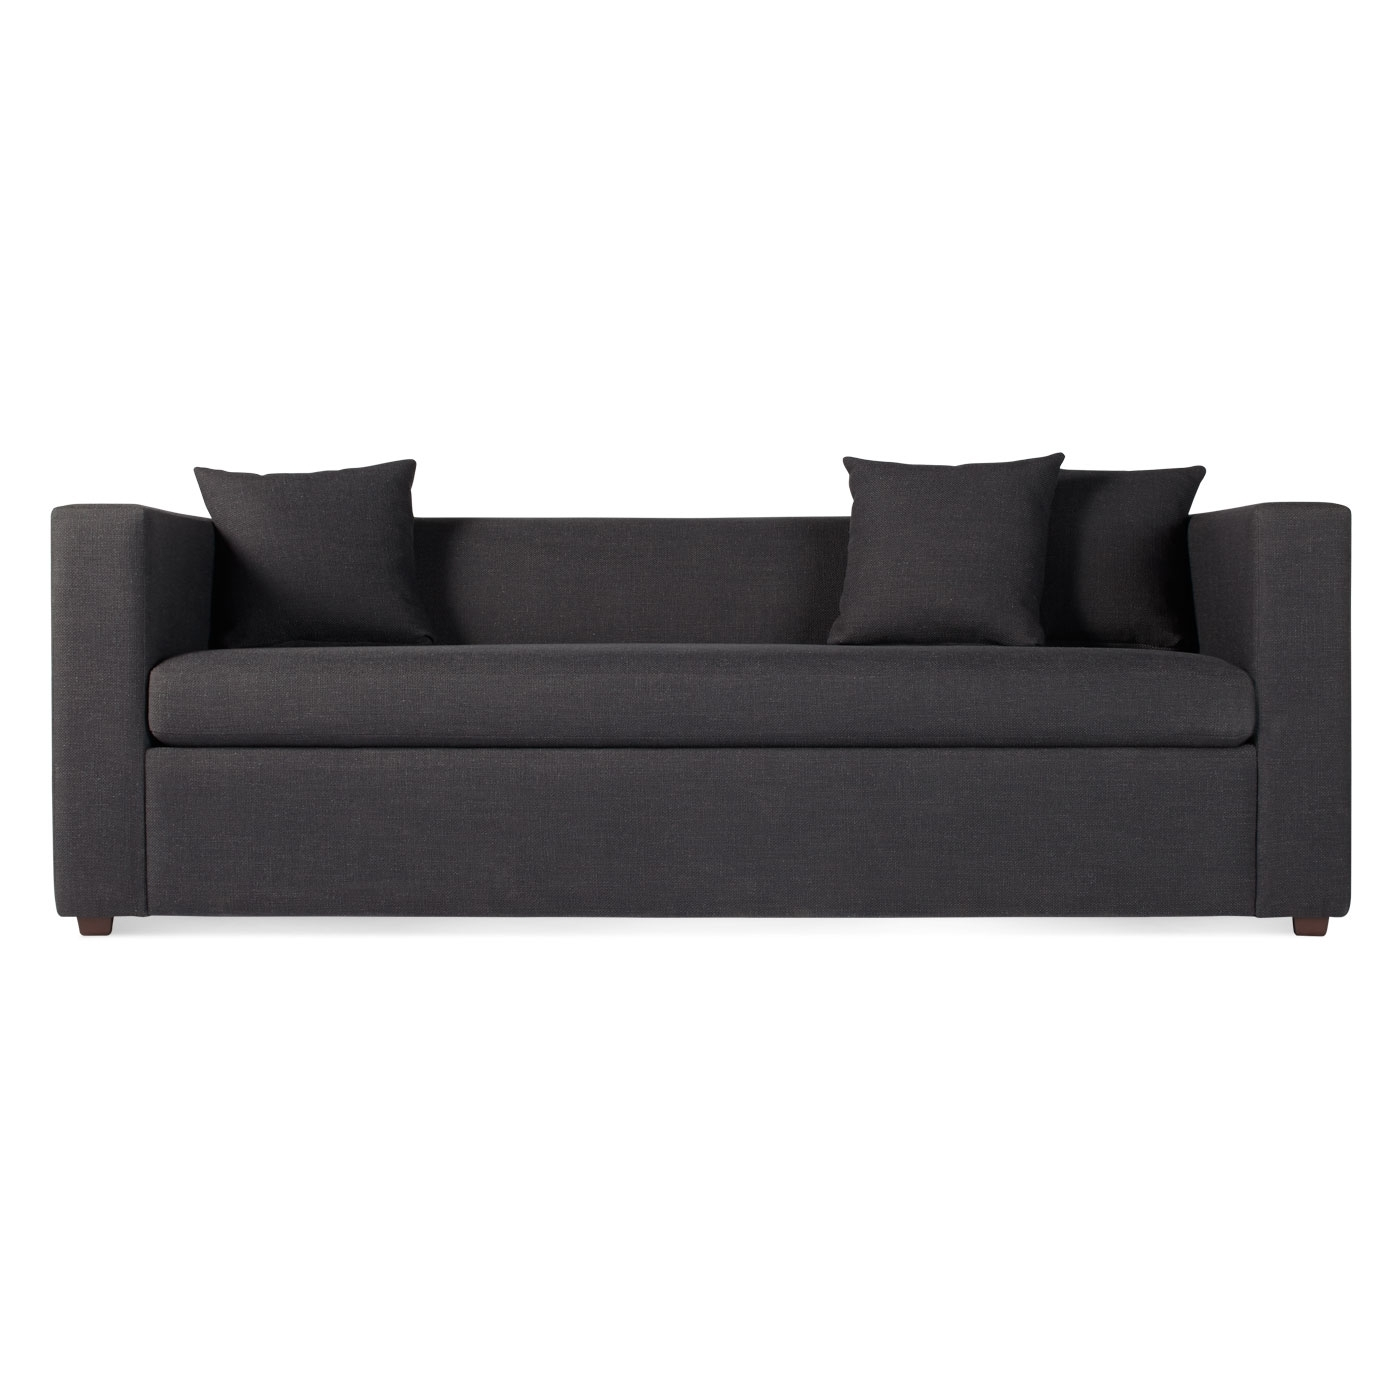 2019 Furniture : Mattress Firm 77057 Sleeper Sectional Sofa For Small Pertaining To Tuscaloosa Sectional Sofas (Gallery 5 of 20)